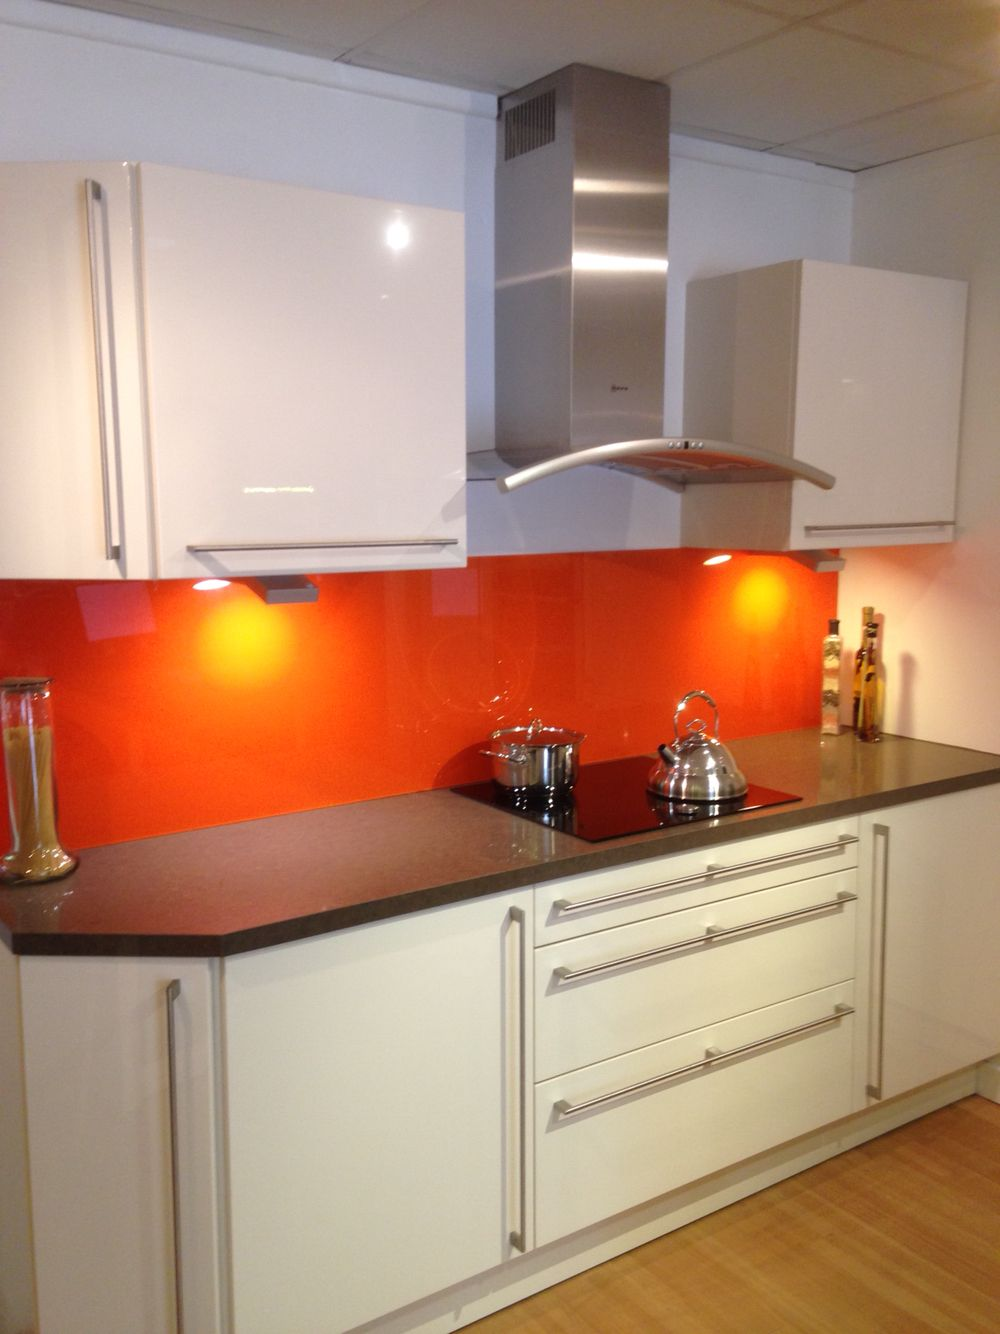 An Example Of Our Beautiful Callar Kitchen Complete With A NEFF Point And  Twist Induction Hob